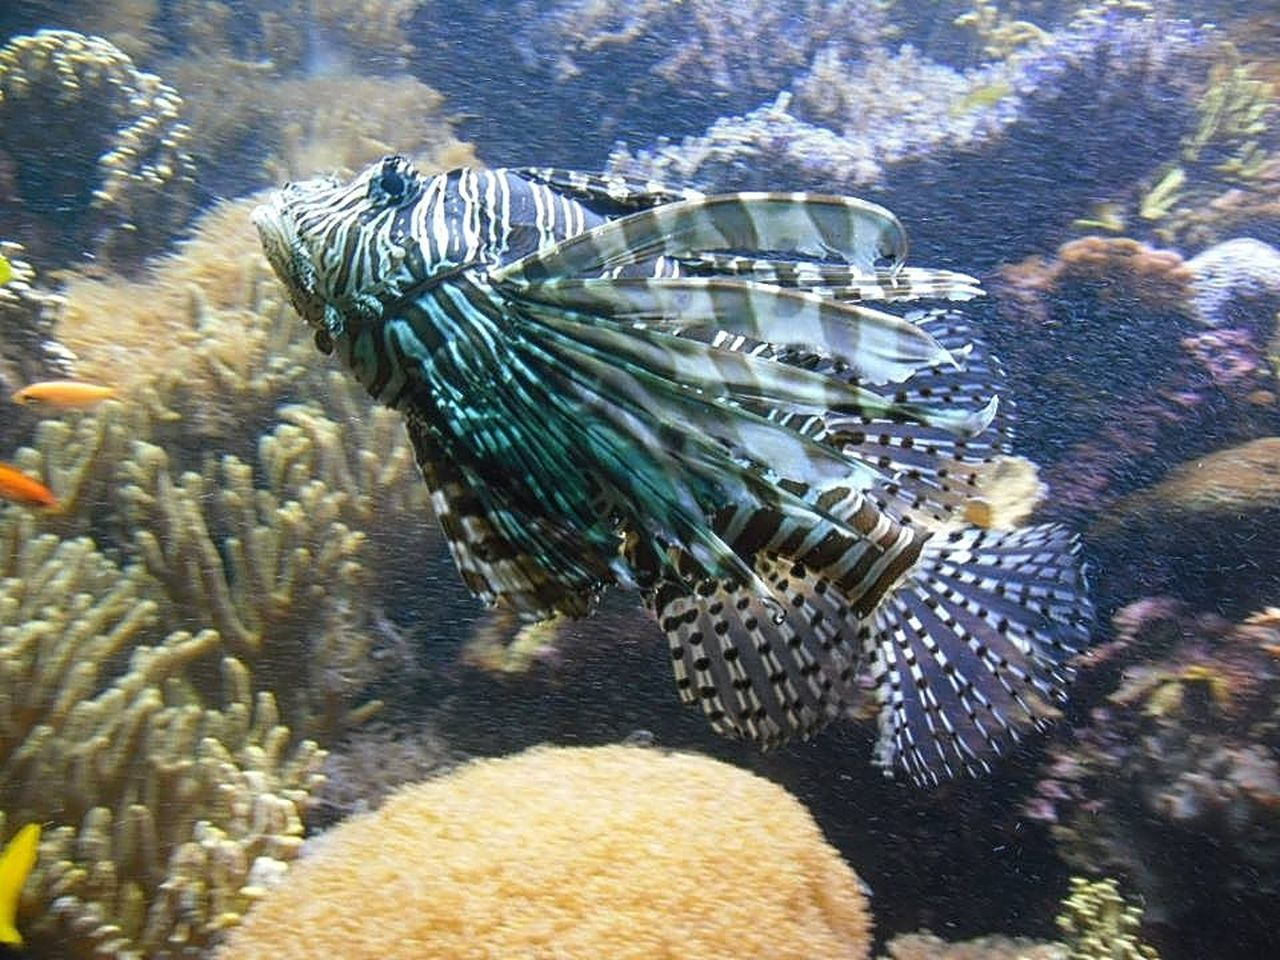 underwater, sea life, animal themes, animals in the wild, undersea, water, one animal, animal wildlife, no people, fish, swimming, sea, close-up, nature, coral, day, outdoors